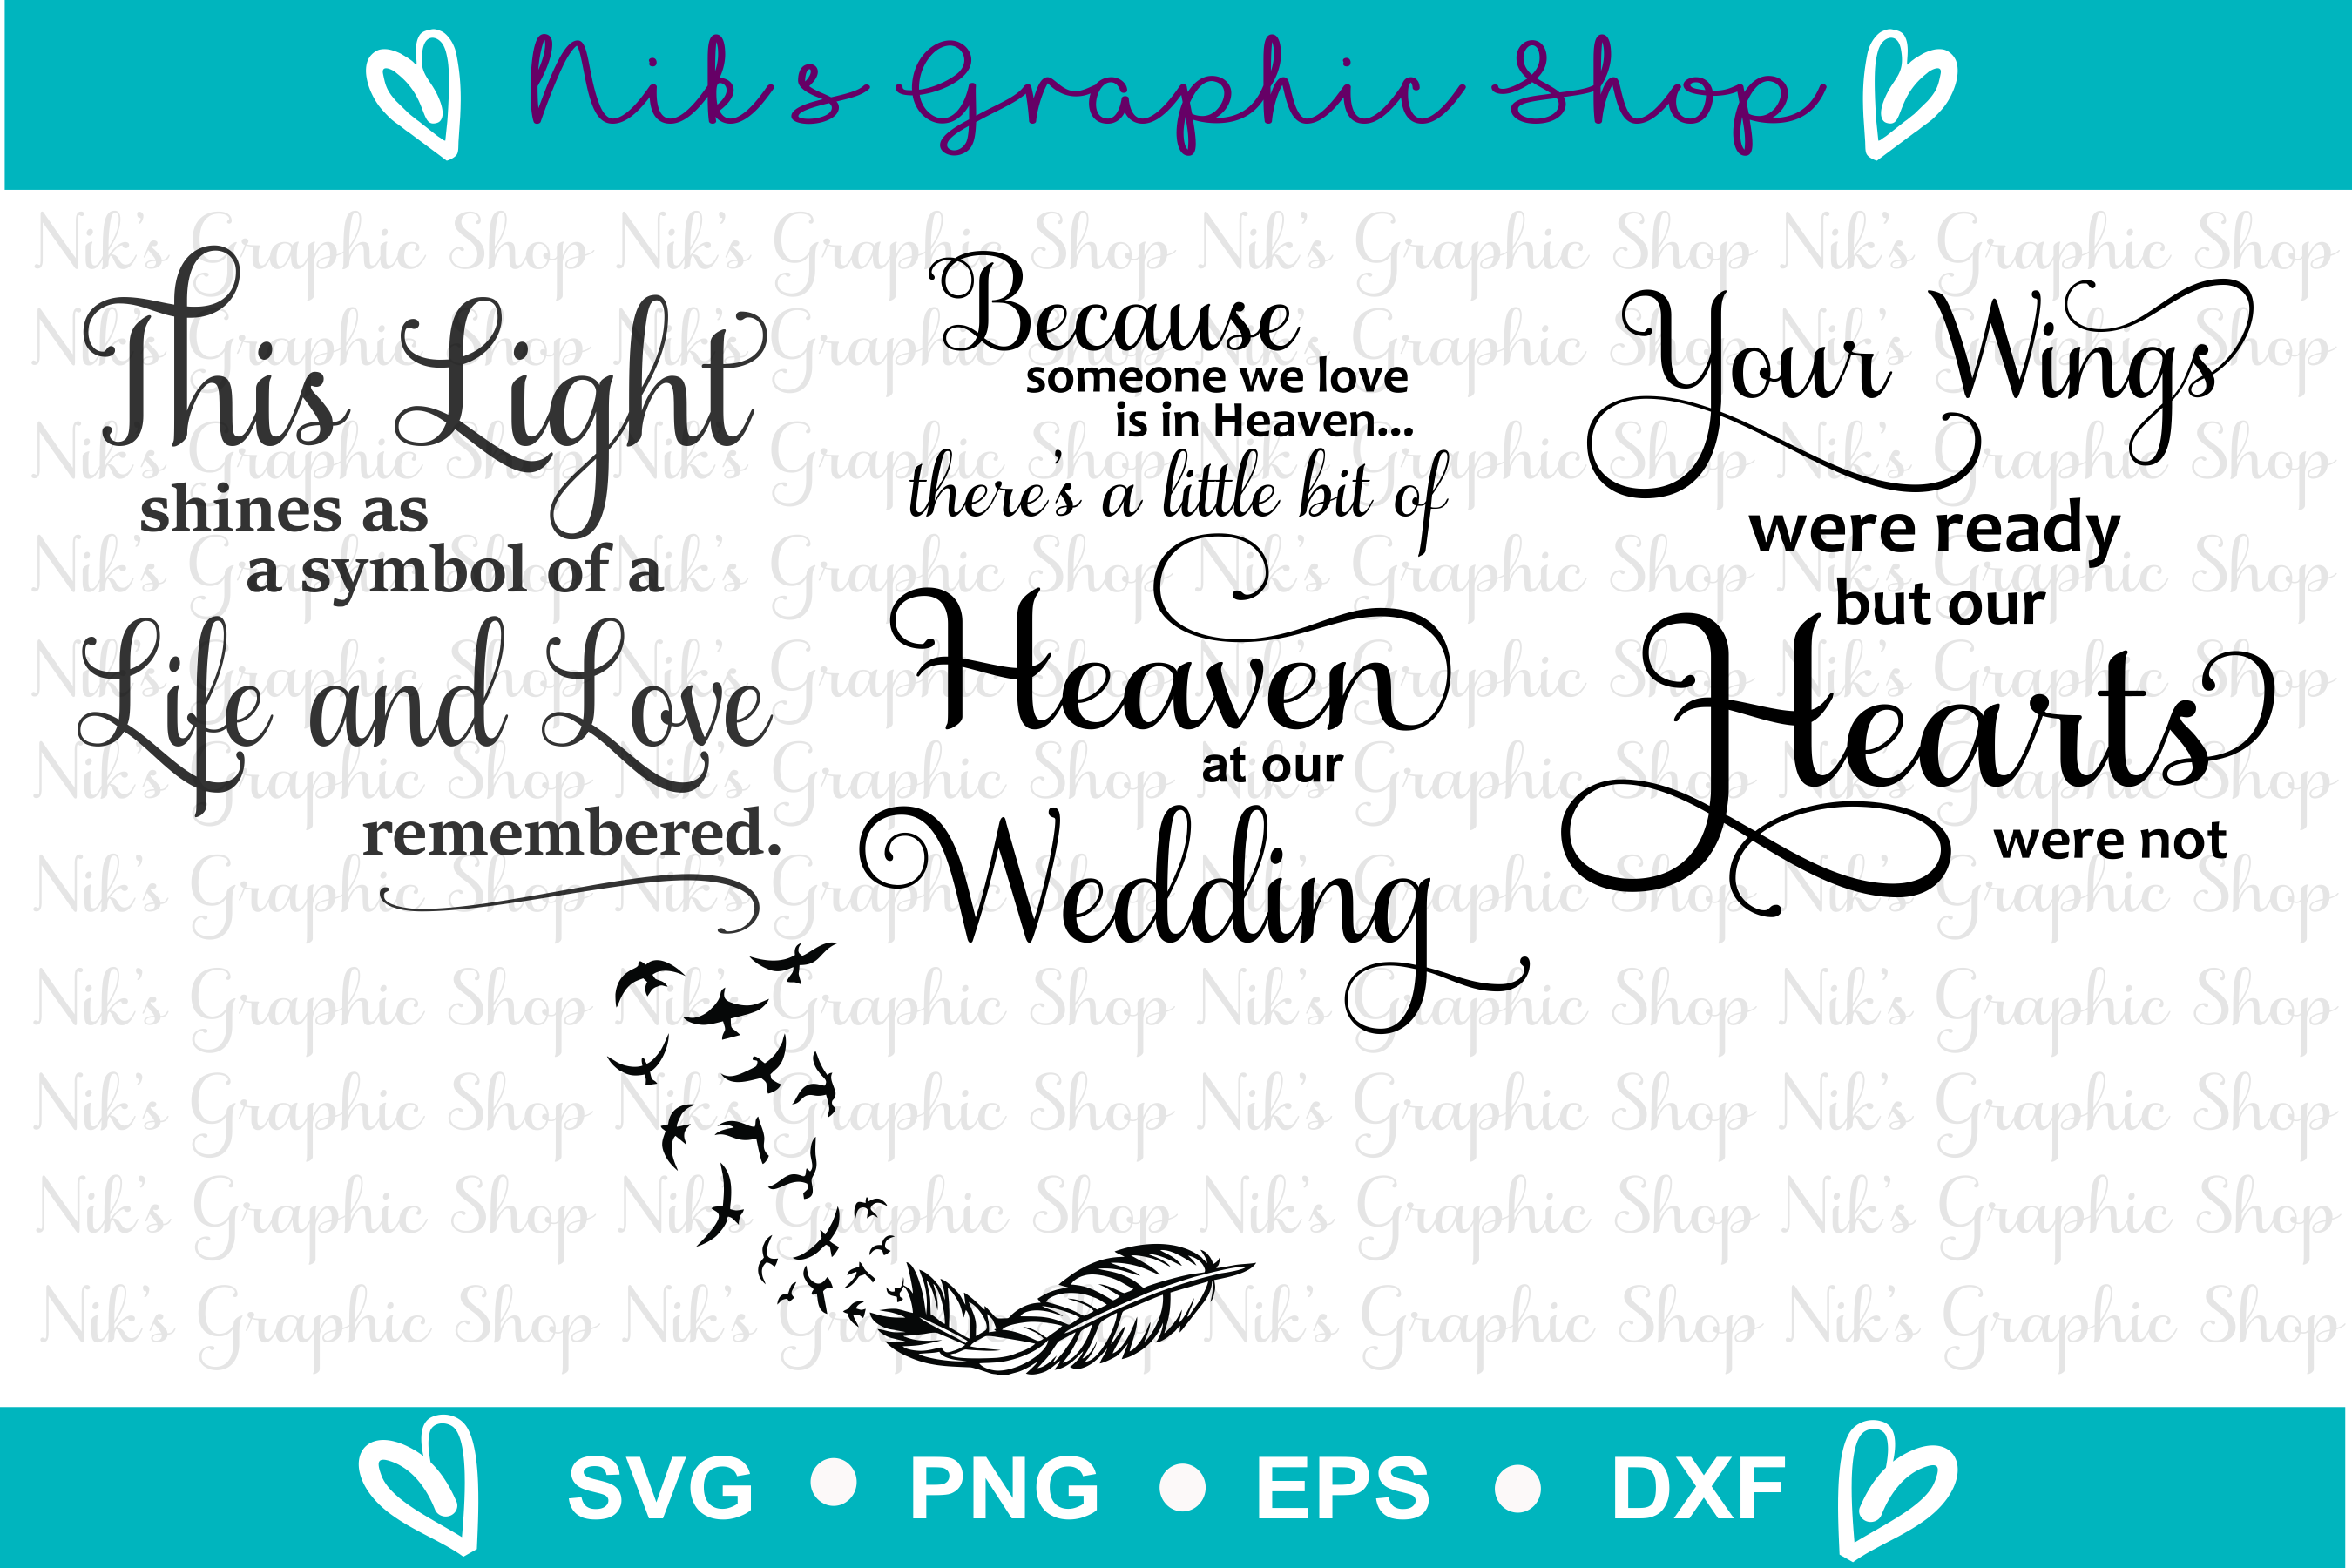 Lantern Svg, This Light Svg, Loving Memory Svg, Wedding Svg example image 2